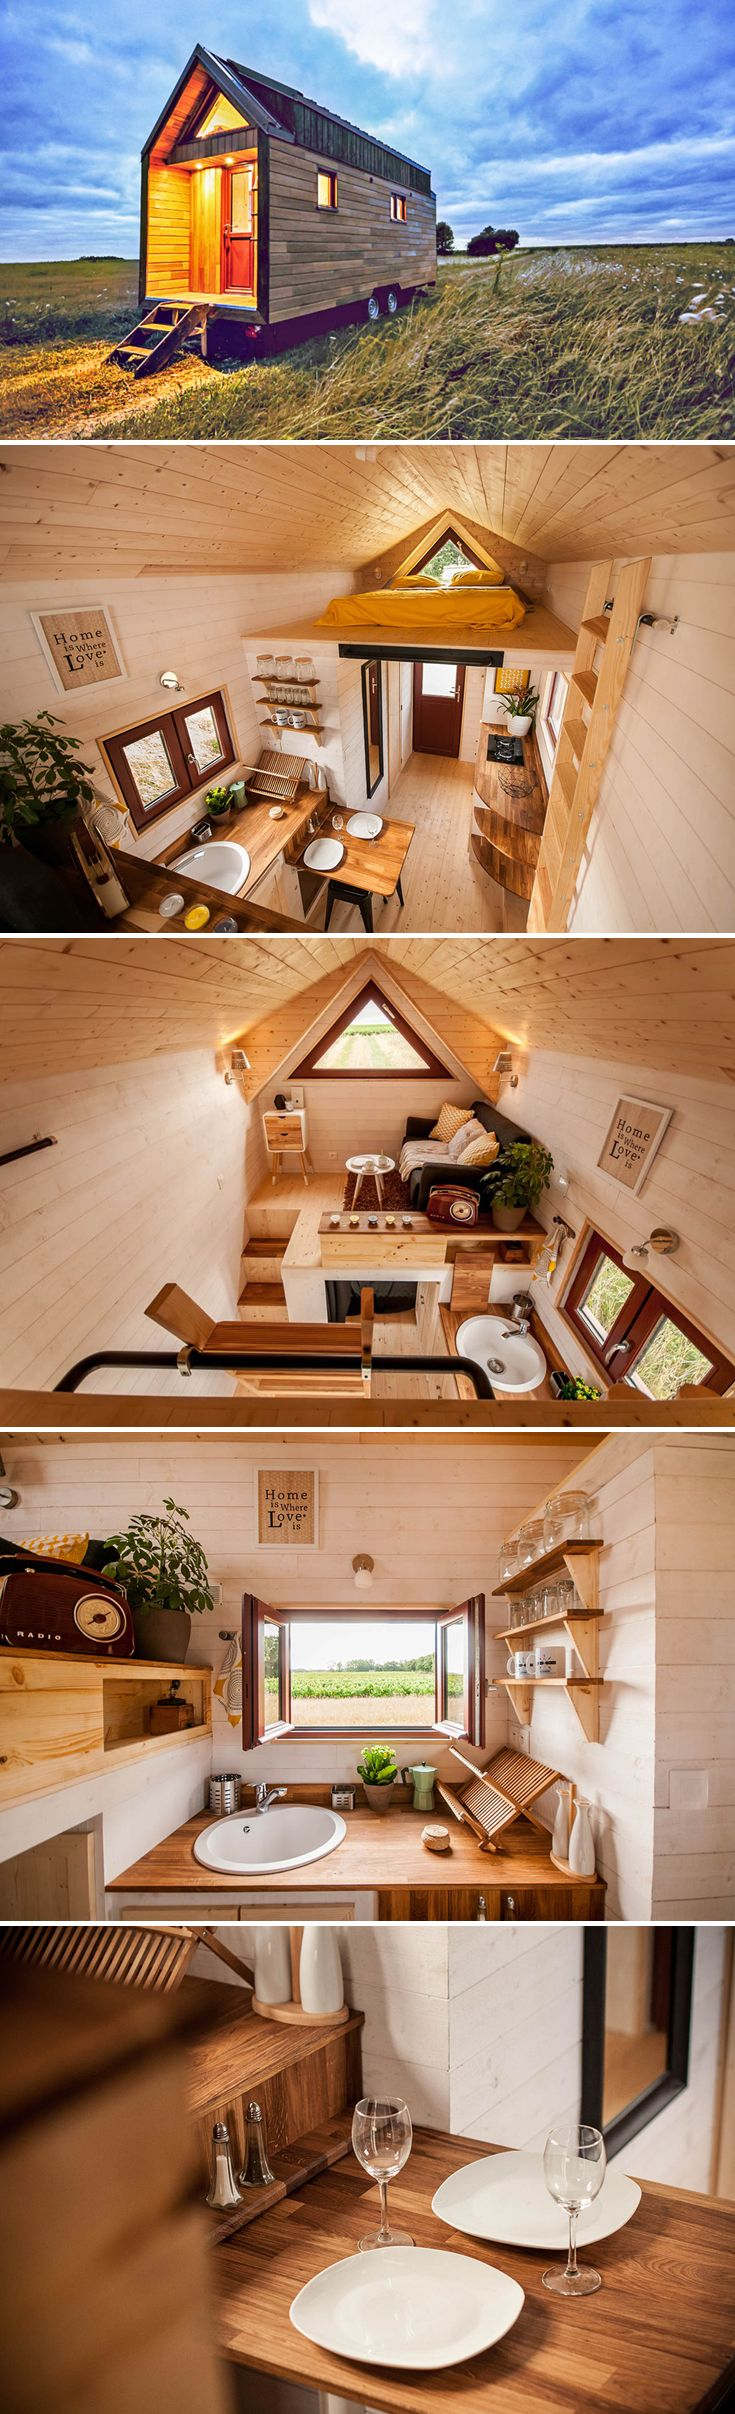 25 best ideas about tiny house interiors on pinterest small house interiors tiny house. Black Bedroom Furniture Sets. Home Design Ideas